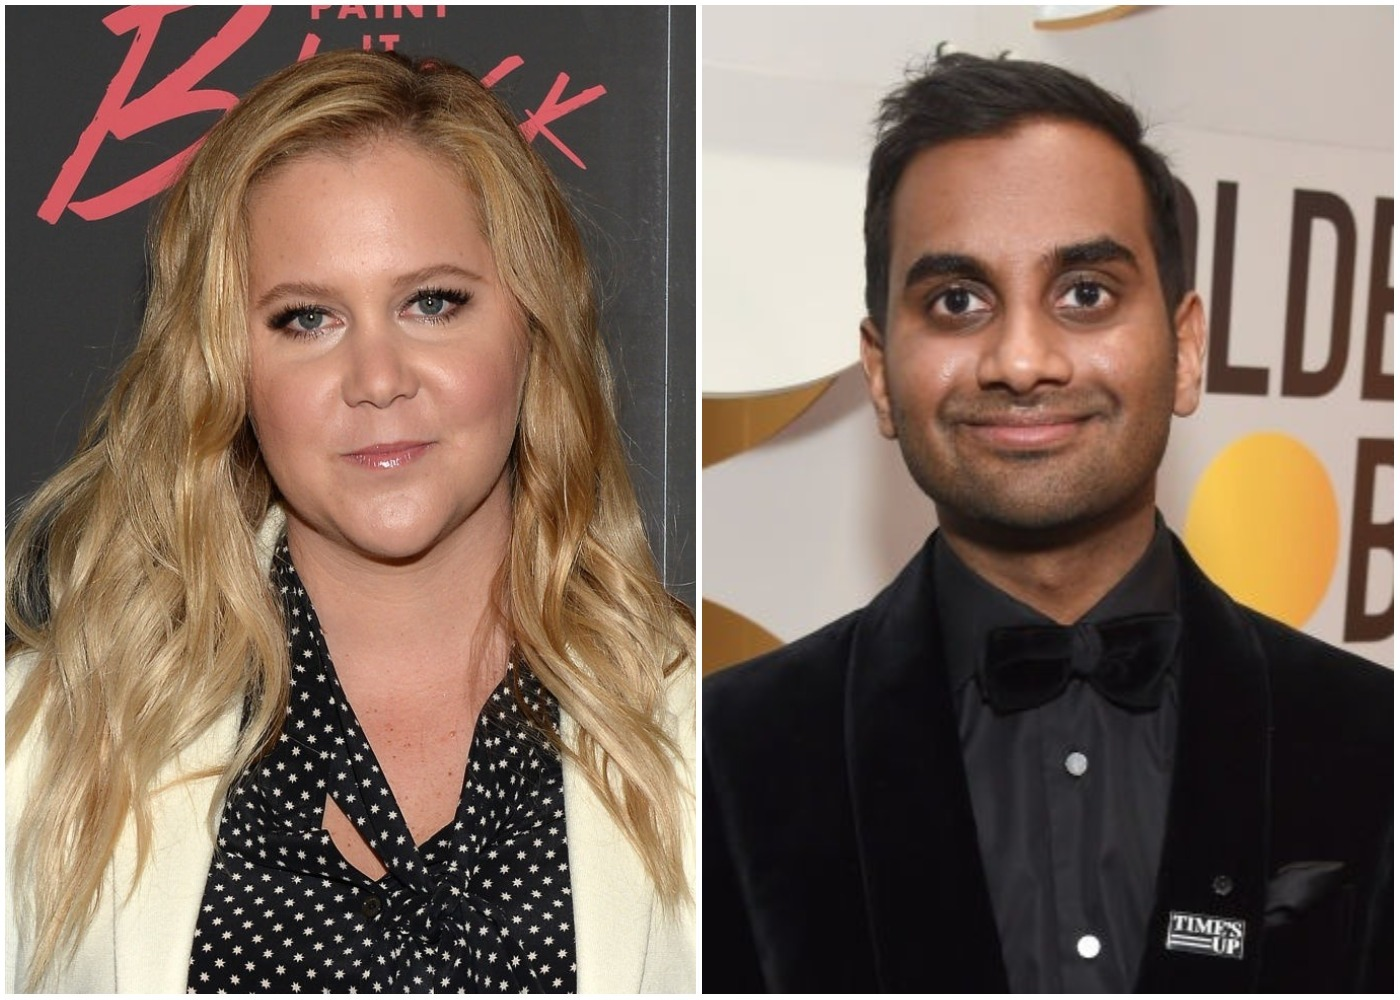 Amy Schumer spoke out about the Aziz Ansari allegations, and her words are powerful